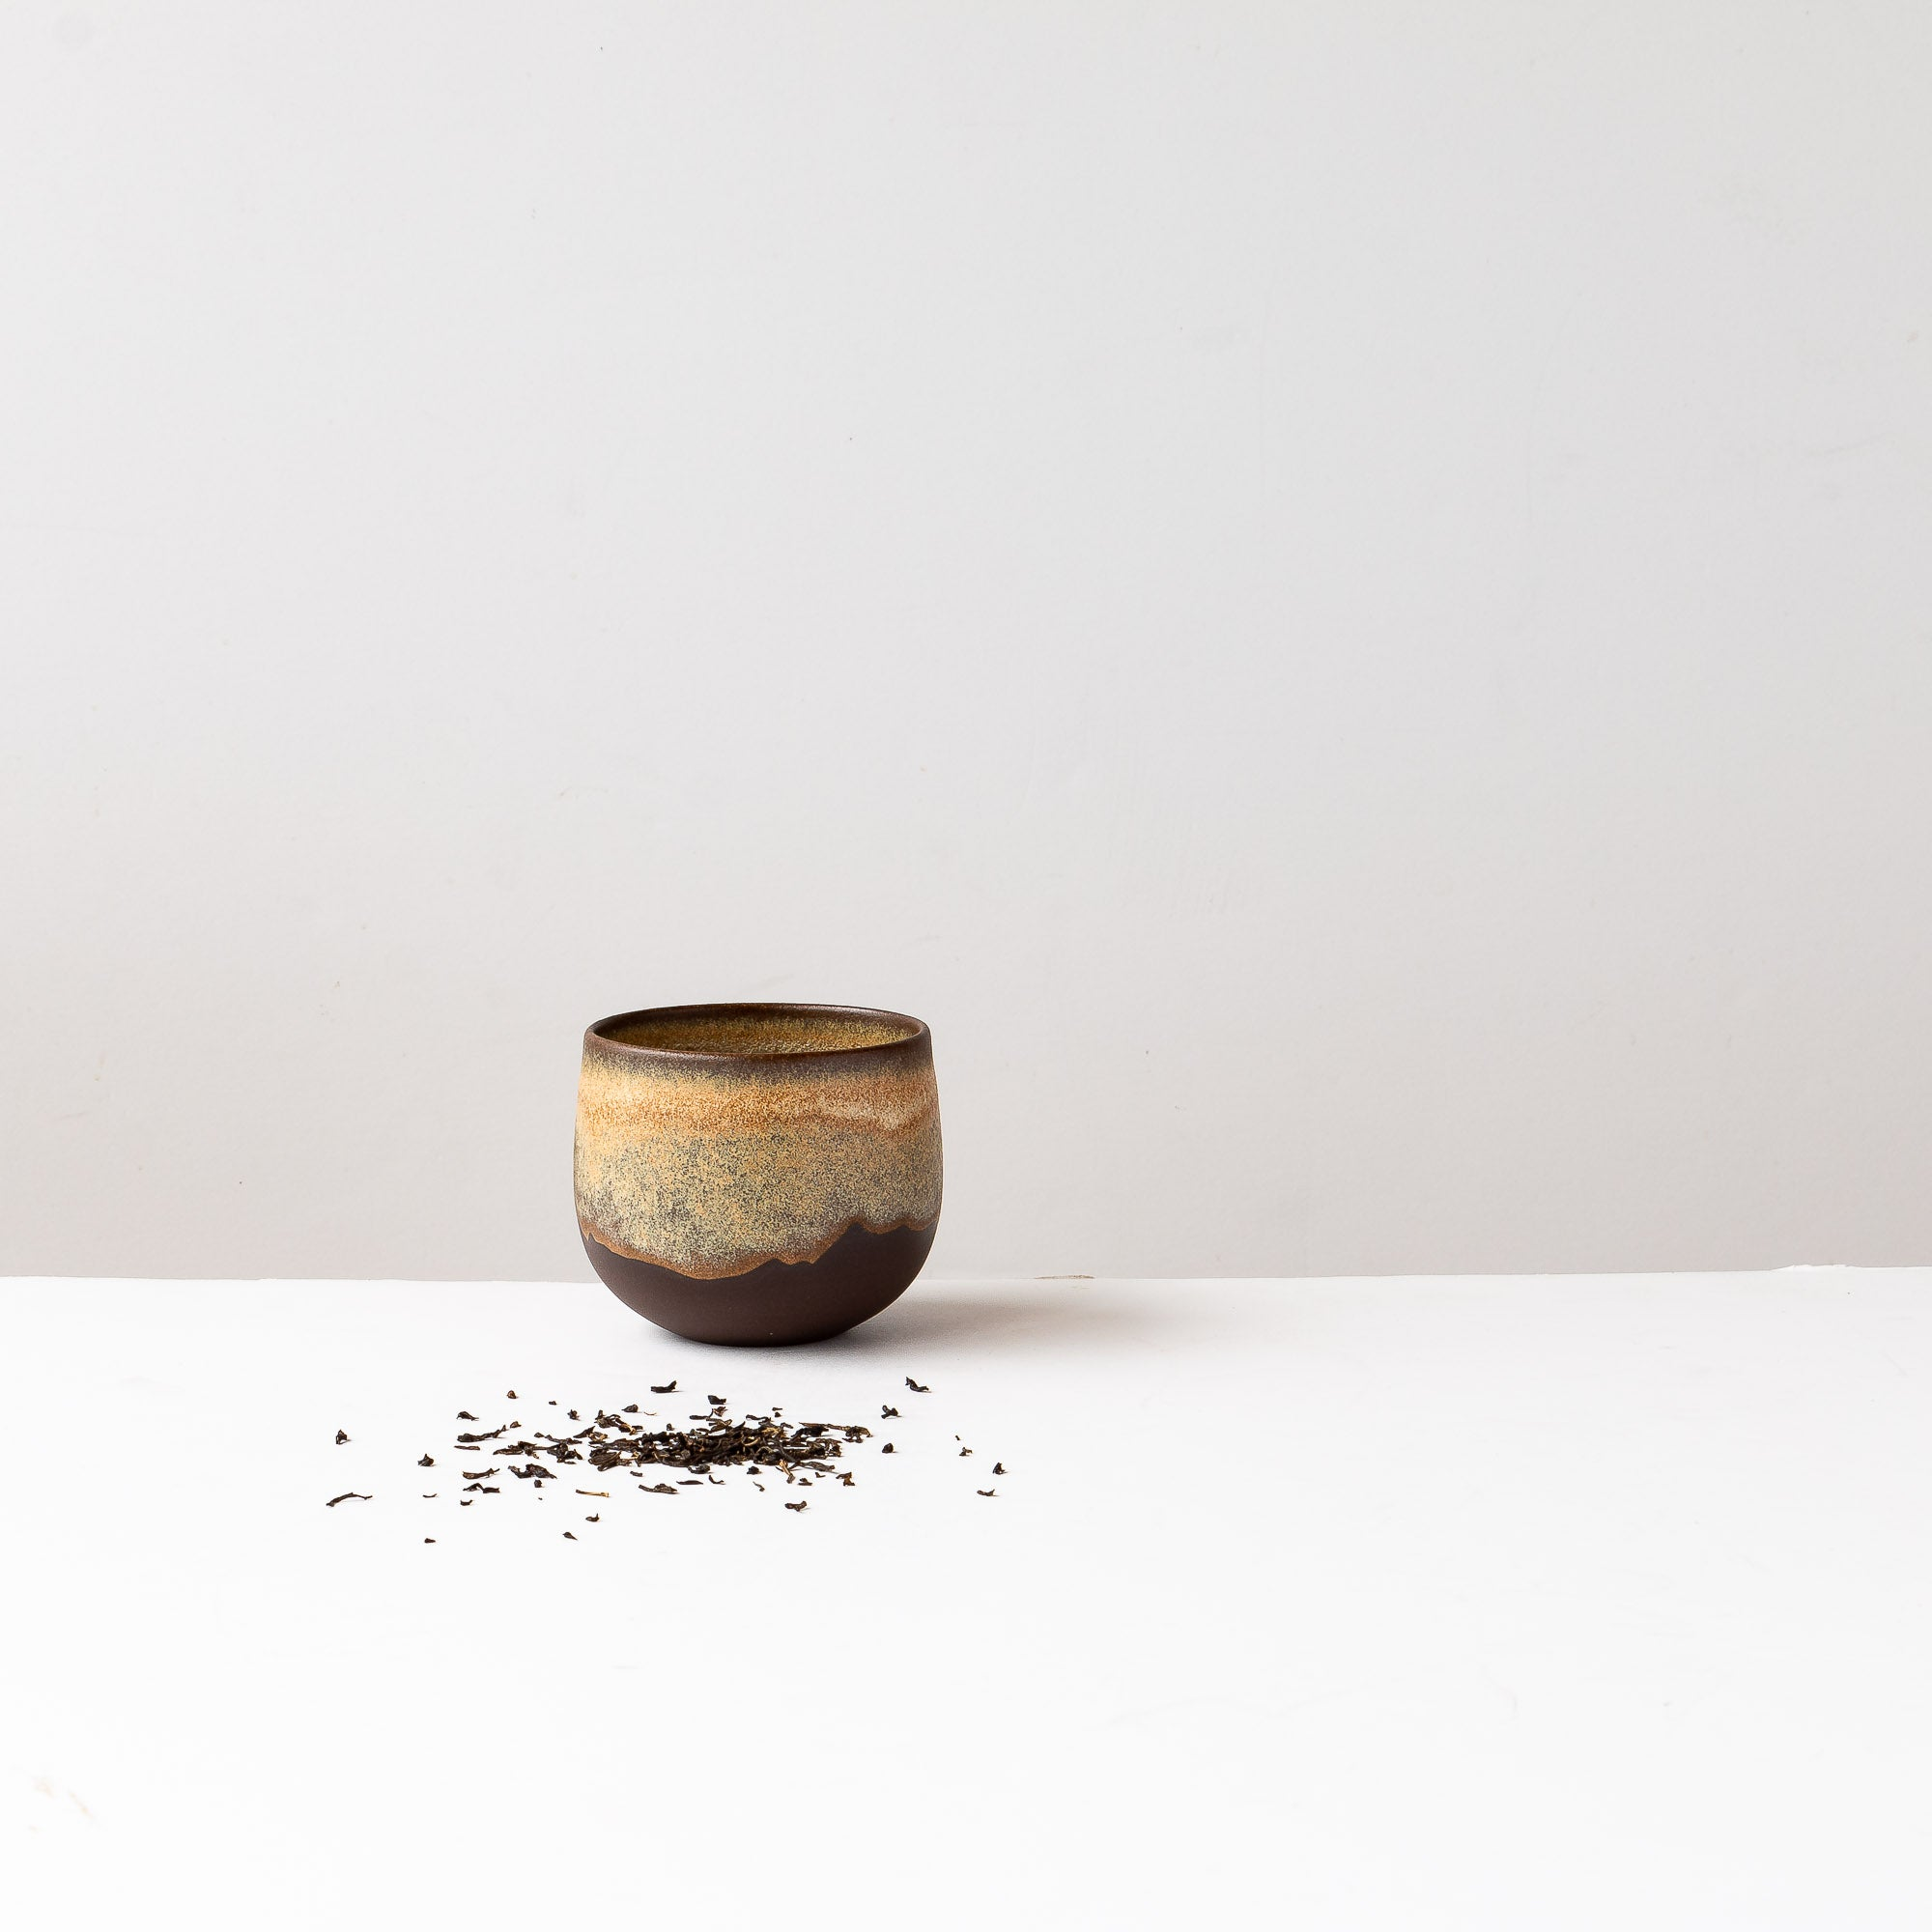 Handthrown Tea Bowl in Black Stoneware - Sold by Chic & Basta